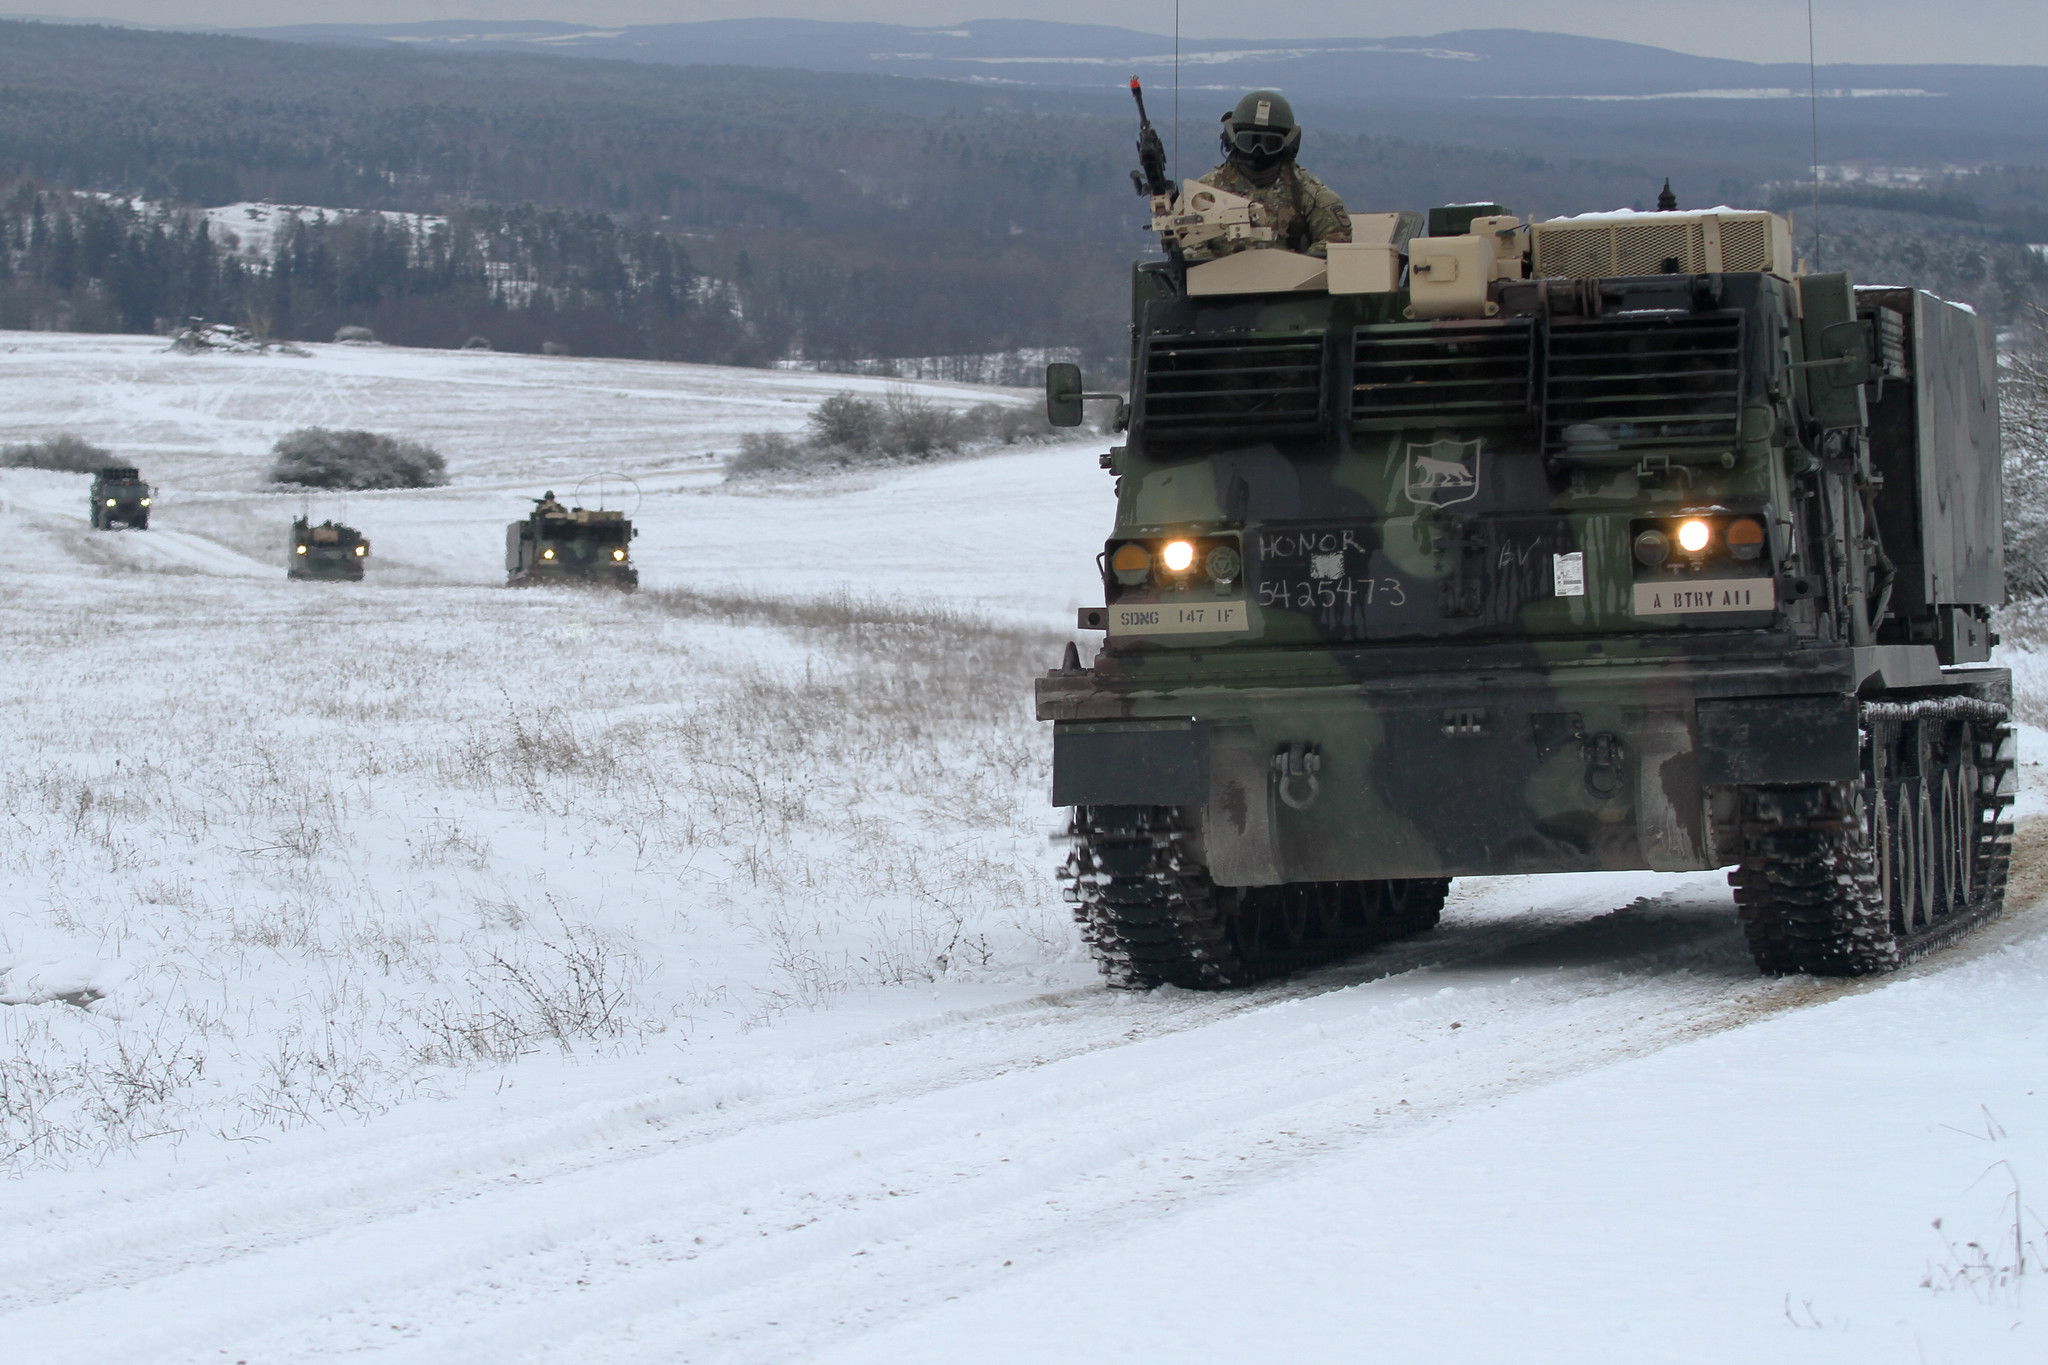 South Dakota's National Guard's 1-147th Field Artillery Battalion convoys to their training site for a two-day field training exercise during Operation Atlantic Resolve in Grafenwohr, Germany, Jan. 29, 2020. (Spc. Tyler O'Connell/National Guard)